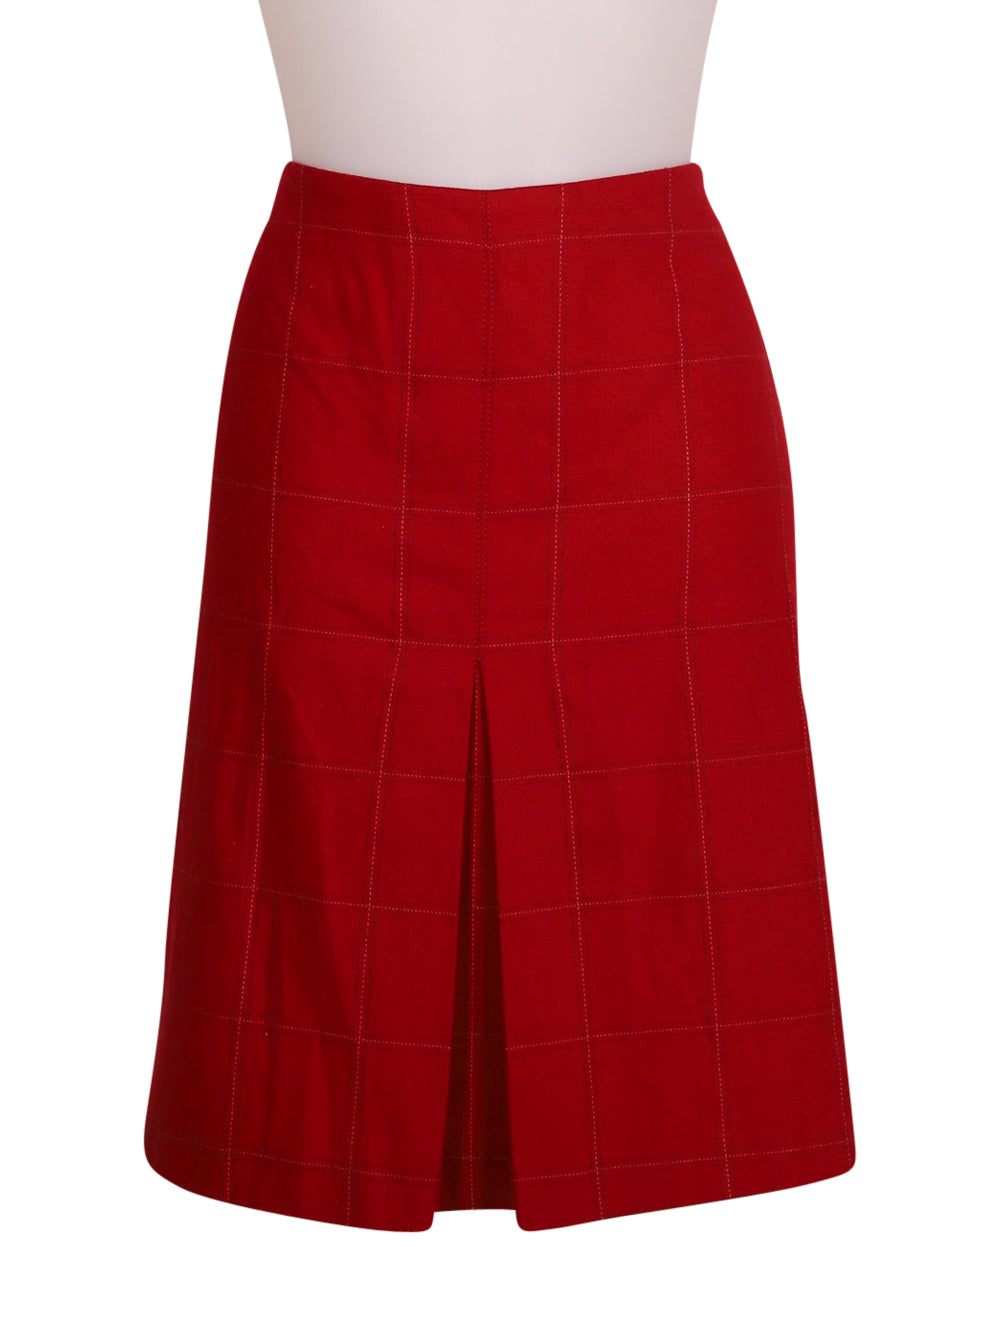 Front photo of Preloved Stefanel Red Woman's skirt - size 10/M